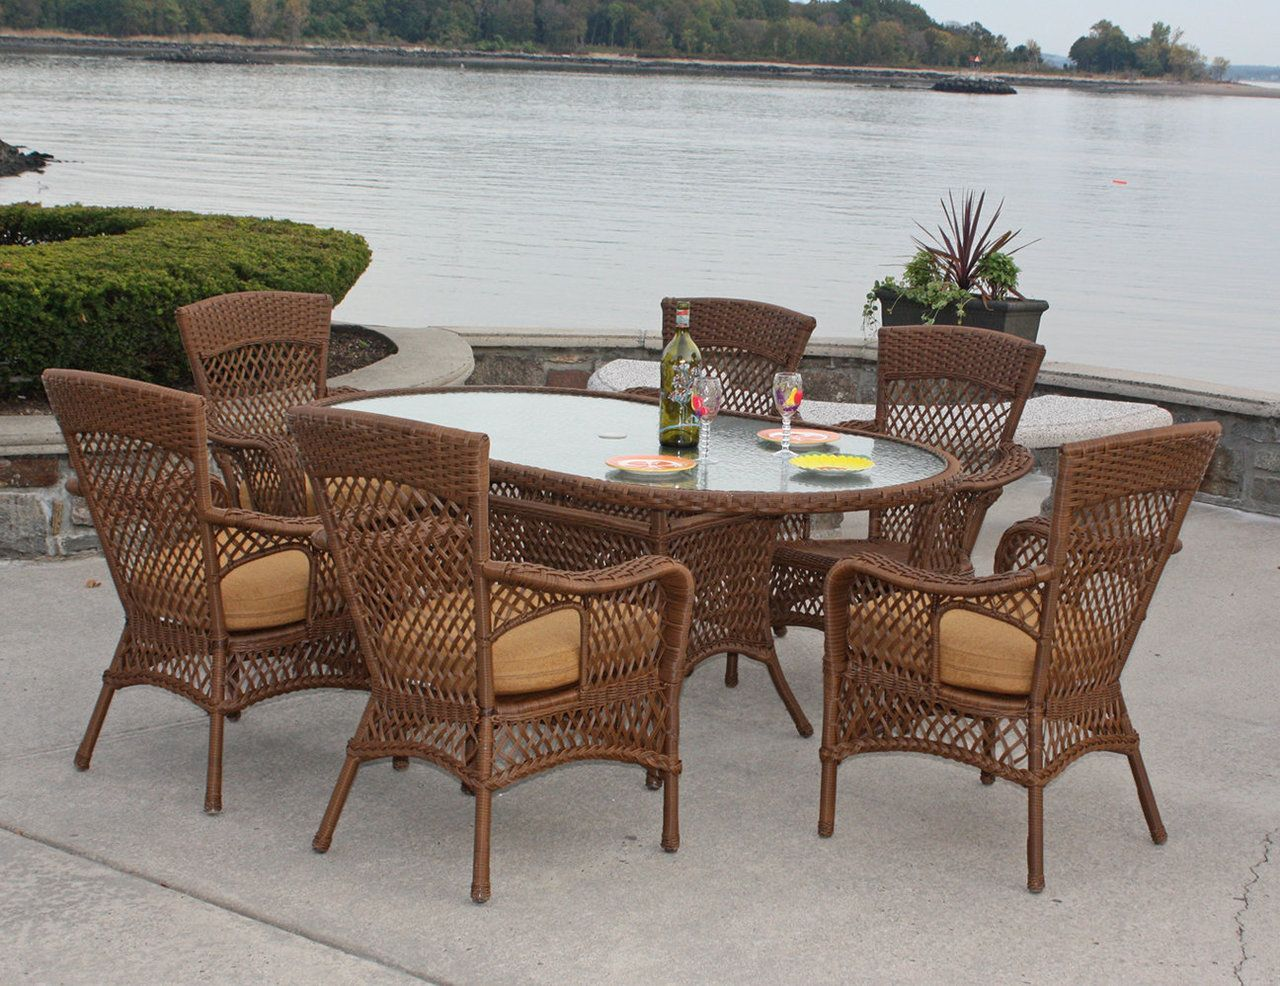 Beautiful #Vinyl Wicker #Dining #Set: #Savannah Wicker By Wicker... | Wicker Blog